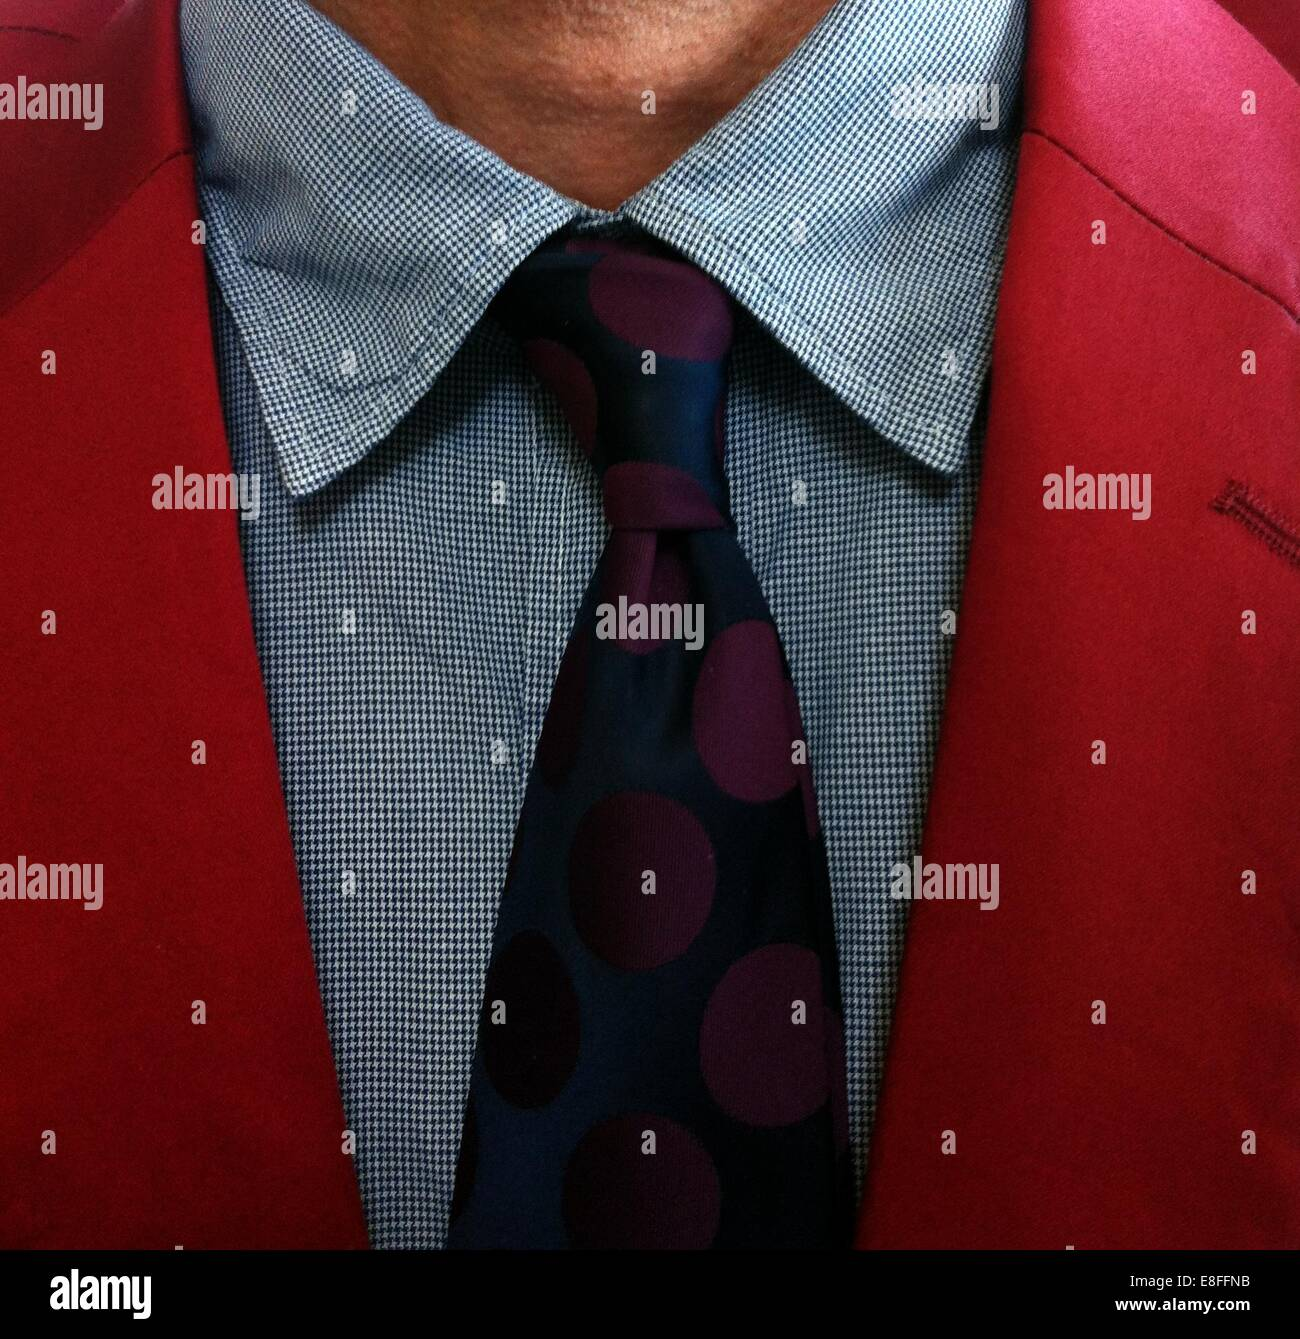 Close up of tie around man's neck - Stock Image